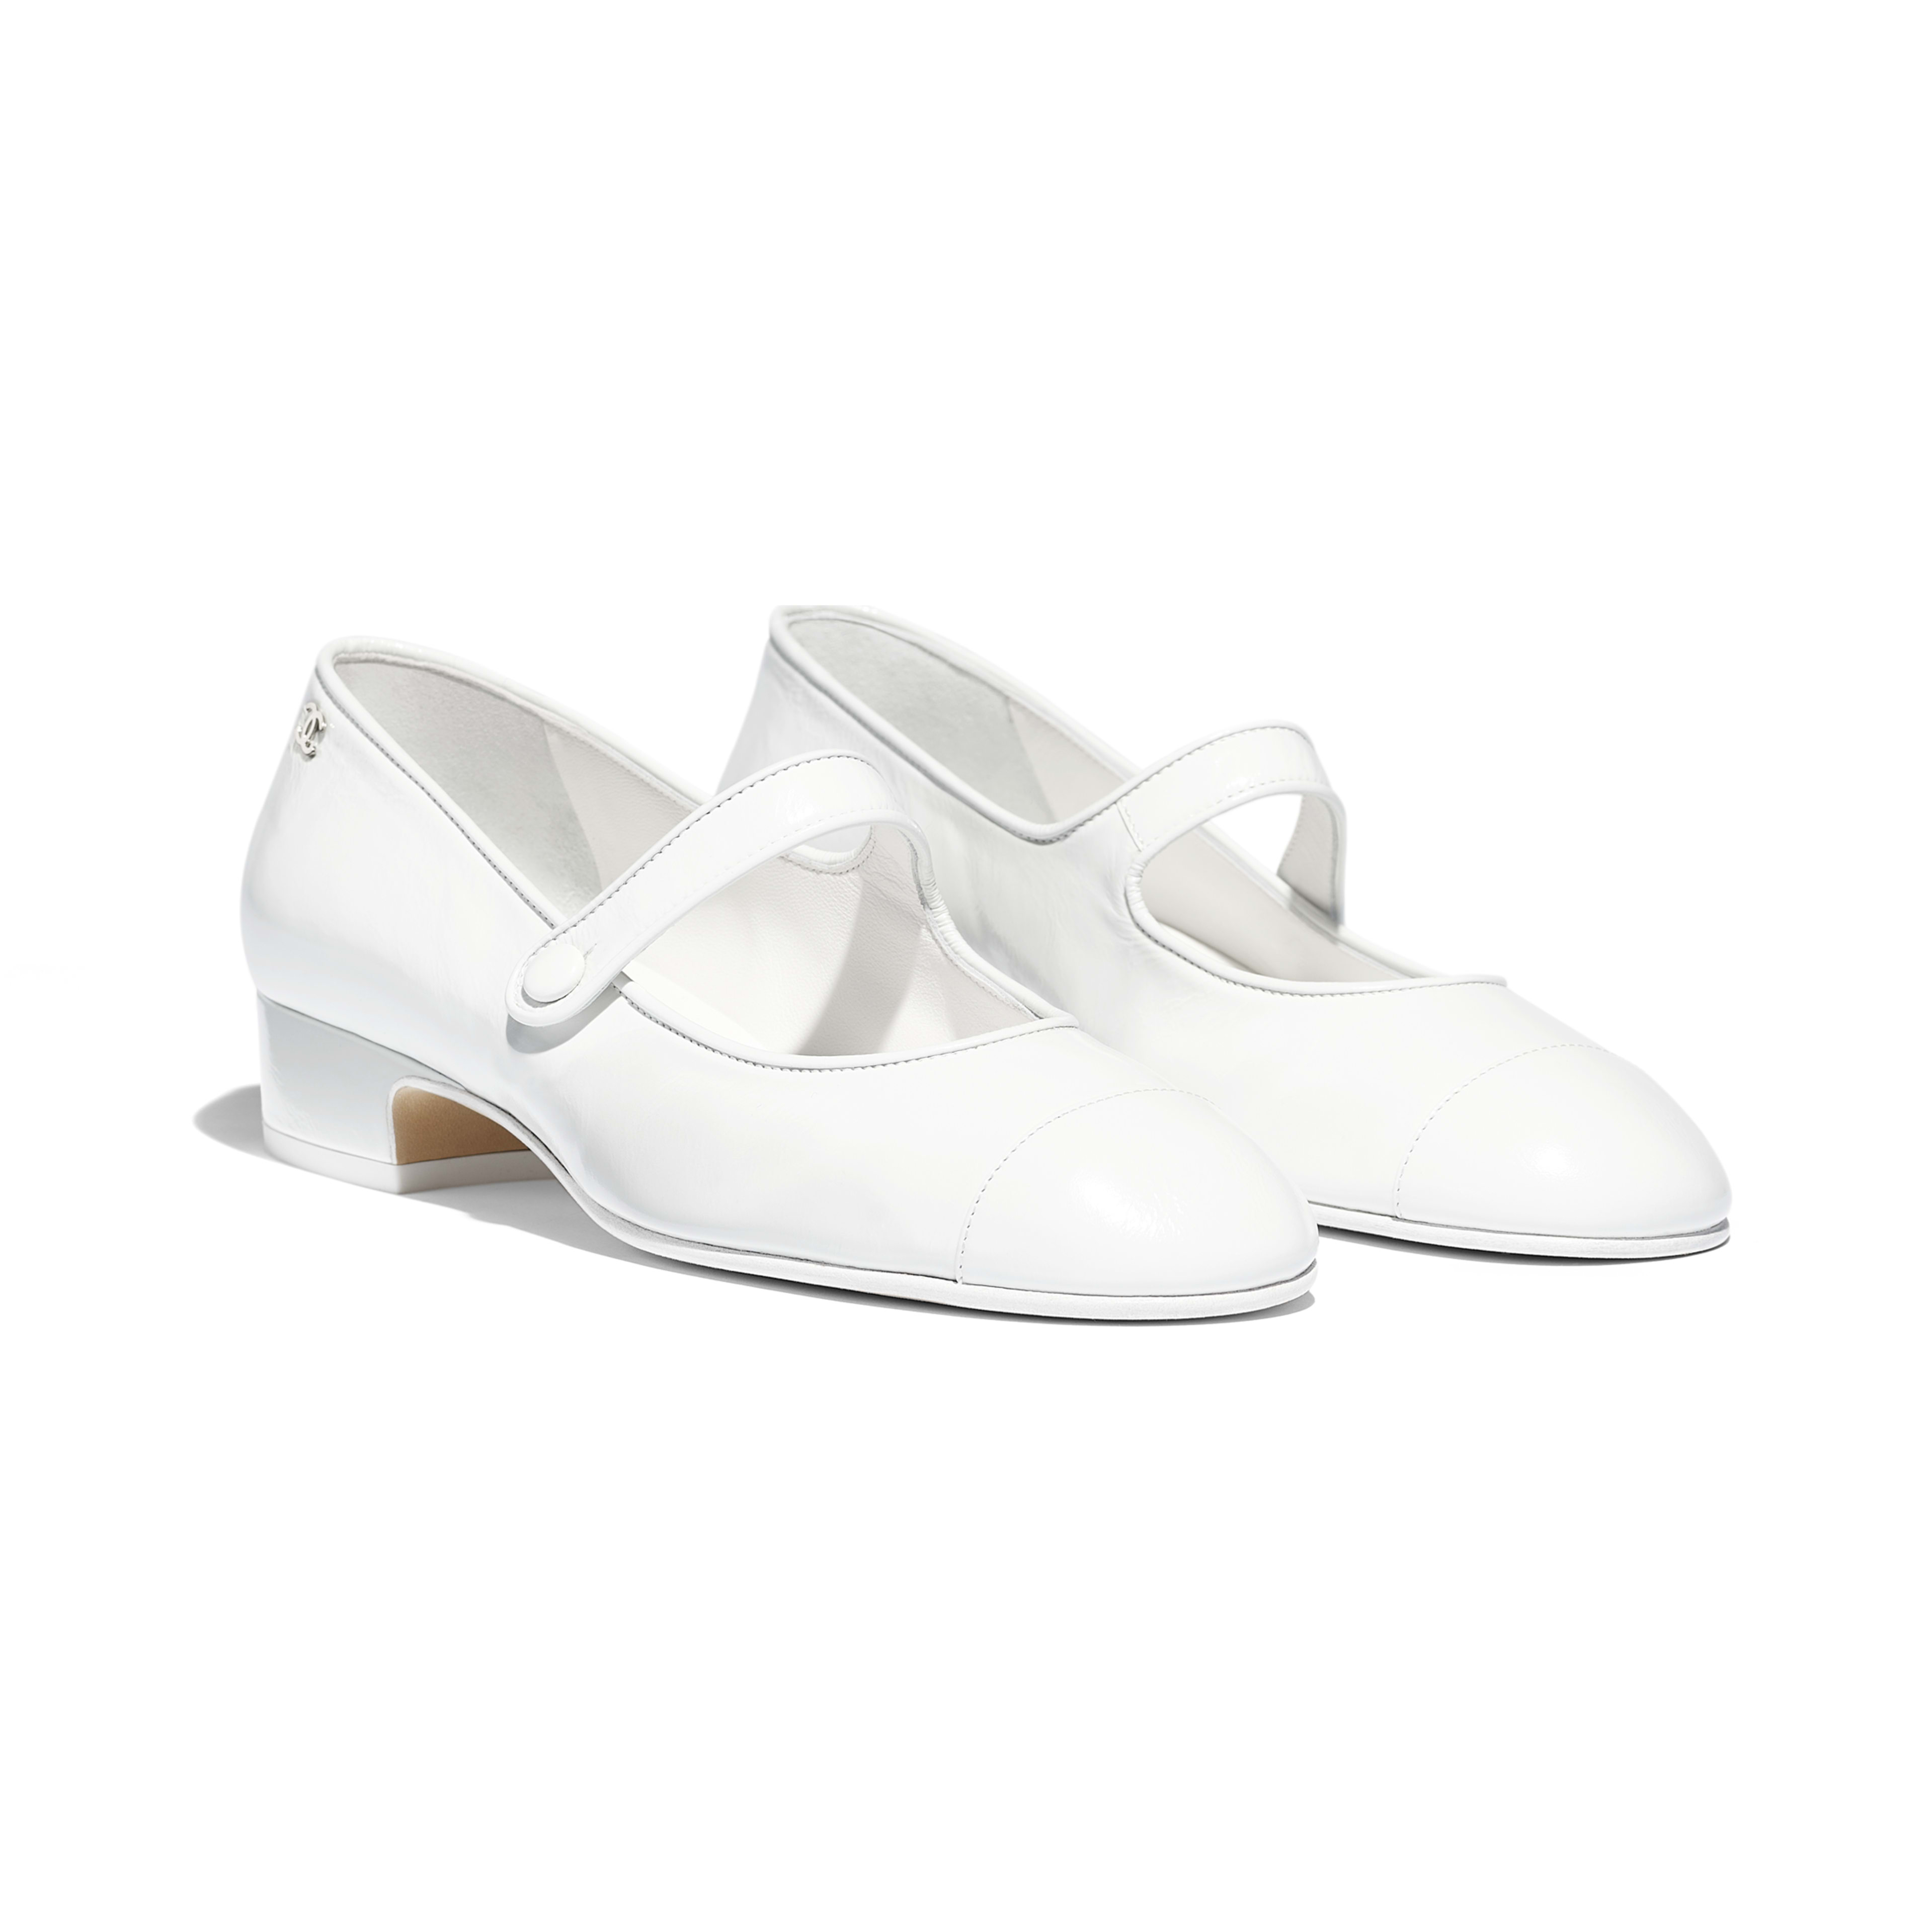 Mary Janes - White - Calfskin - Alternative view - see full sized version